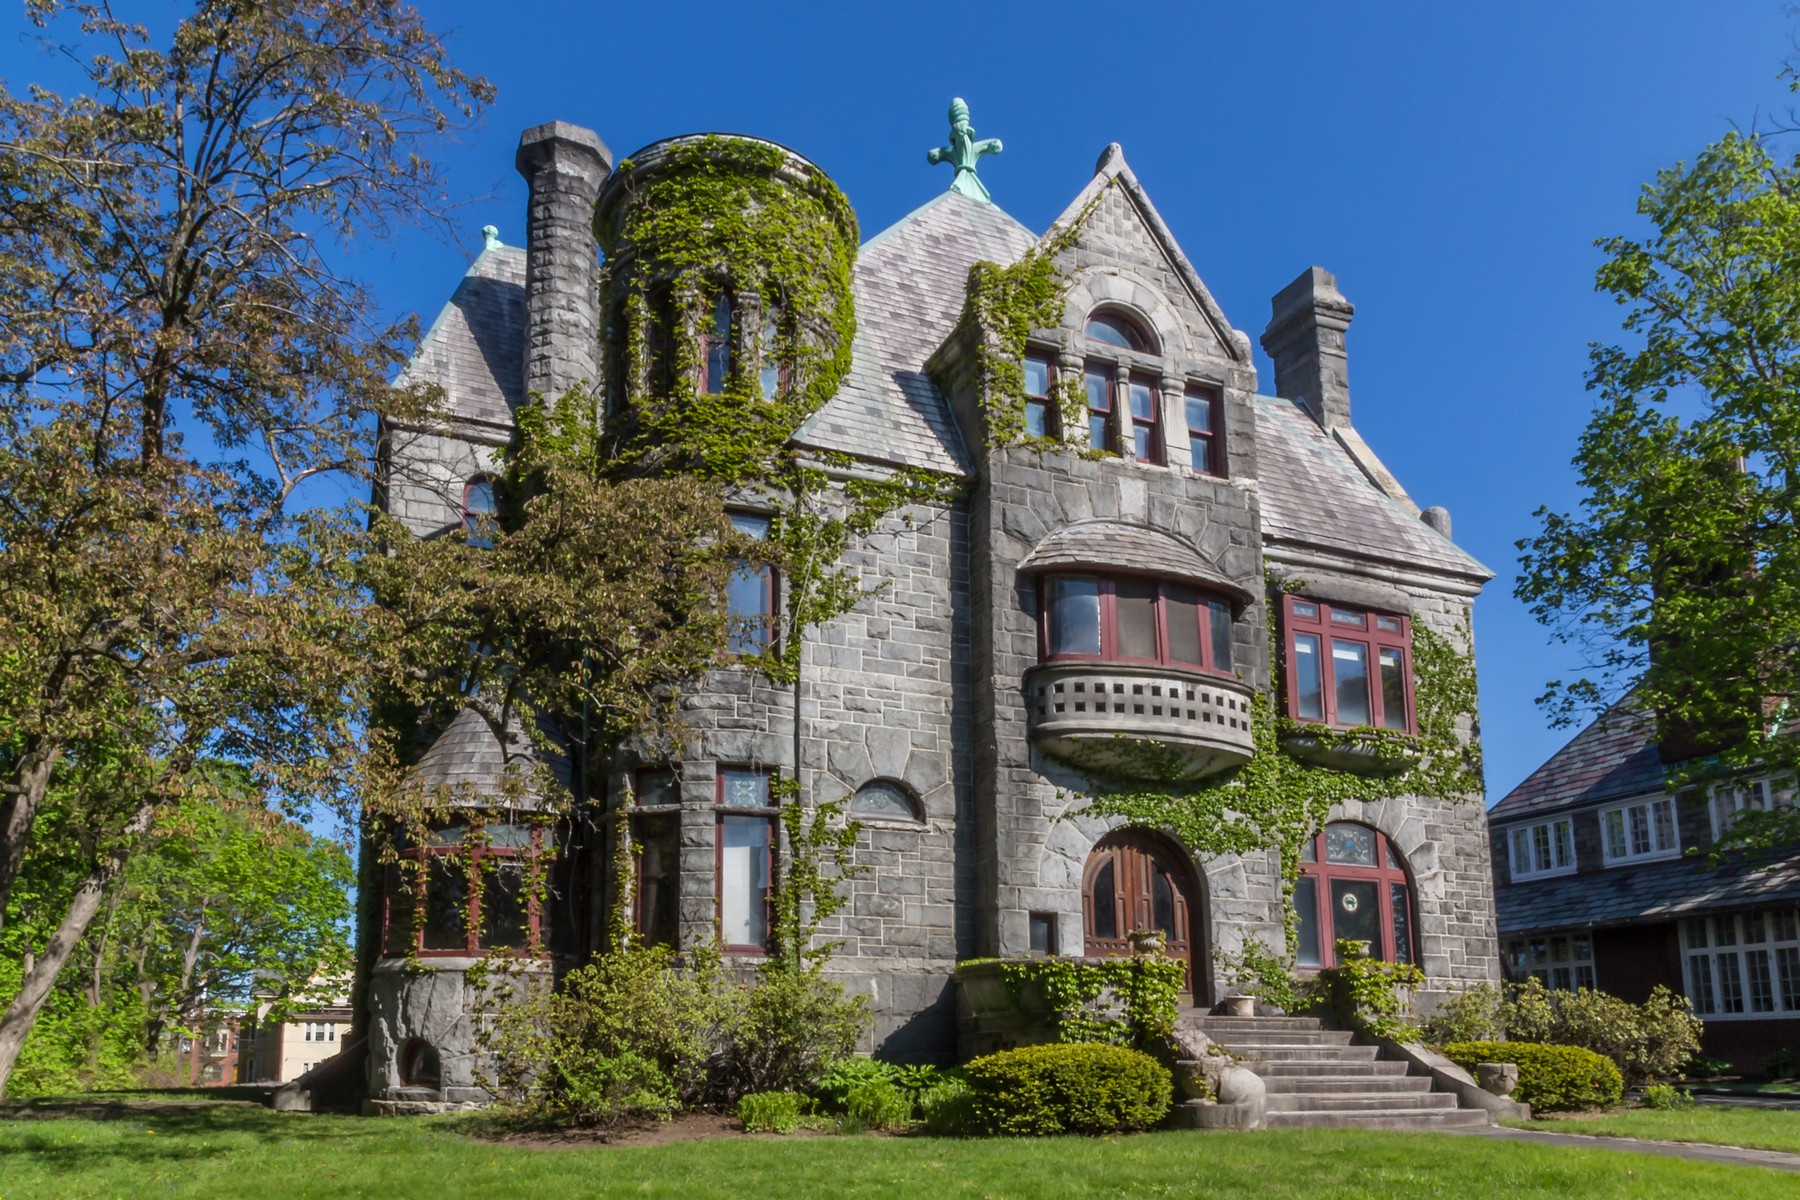 Single Family Home for Sale at Finely Built Romanesque Style House 10 Thurlow Ter Albany, New York 12203 United States